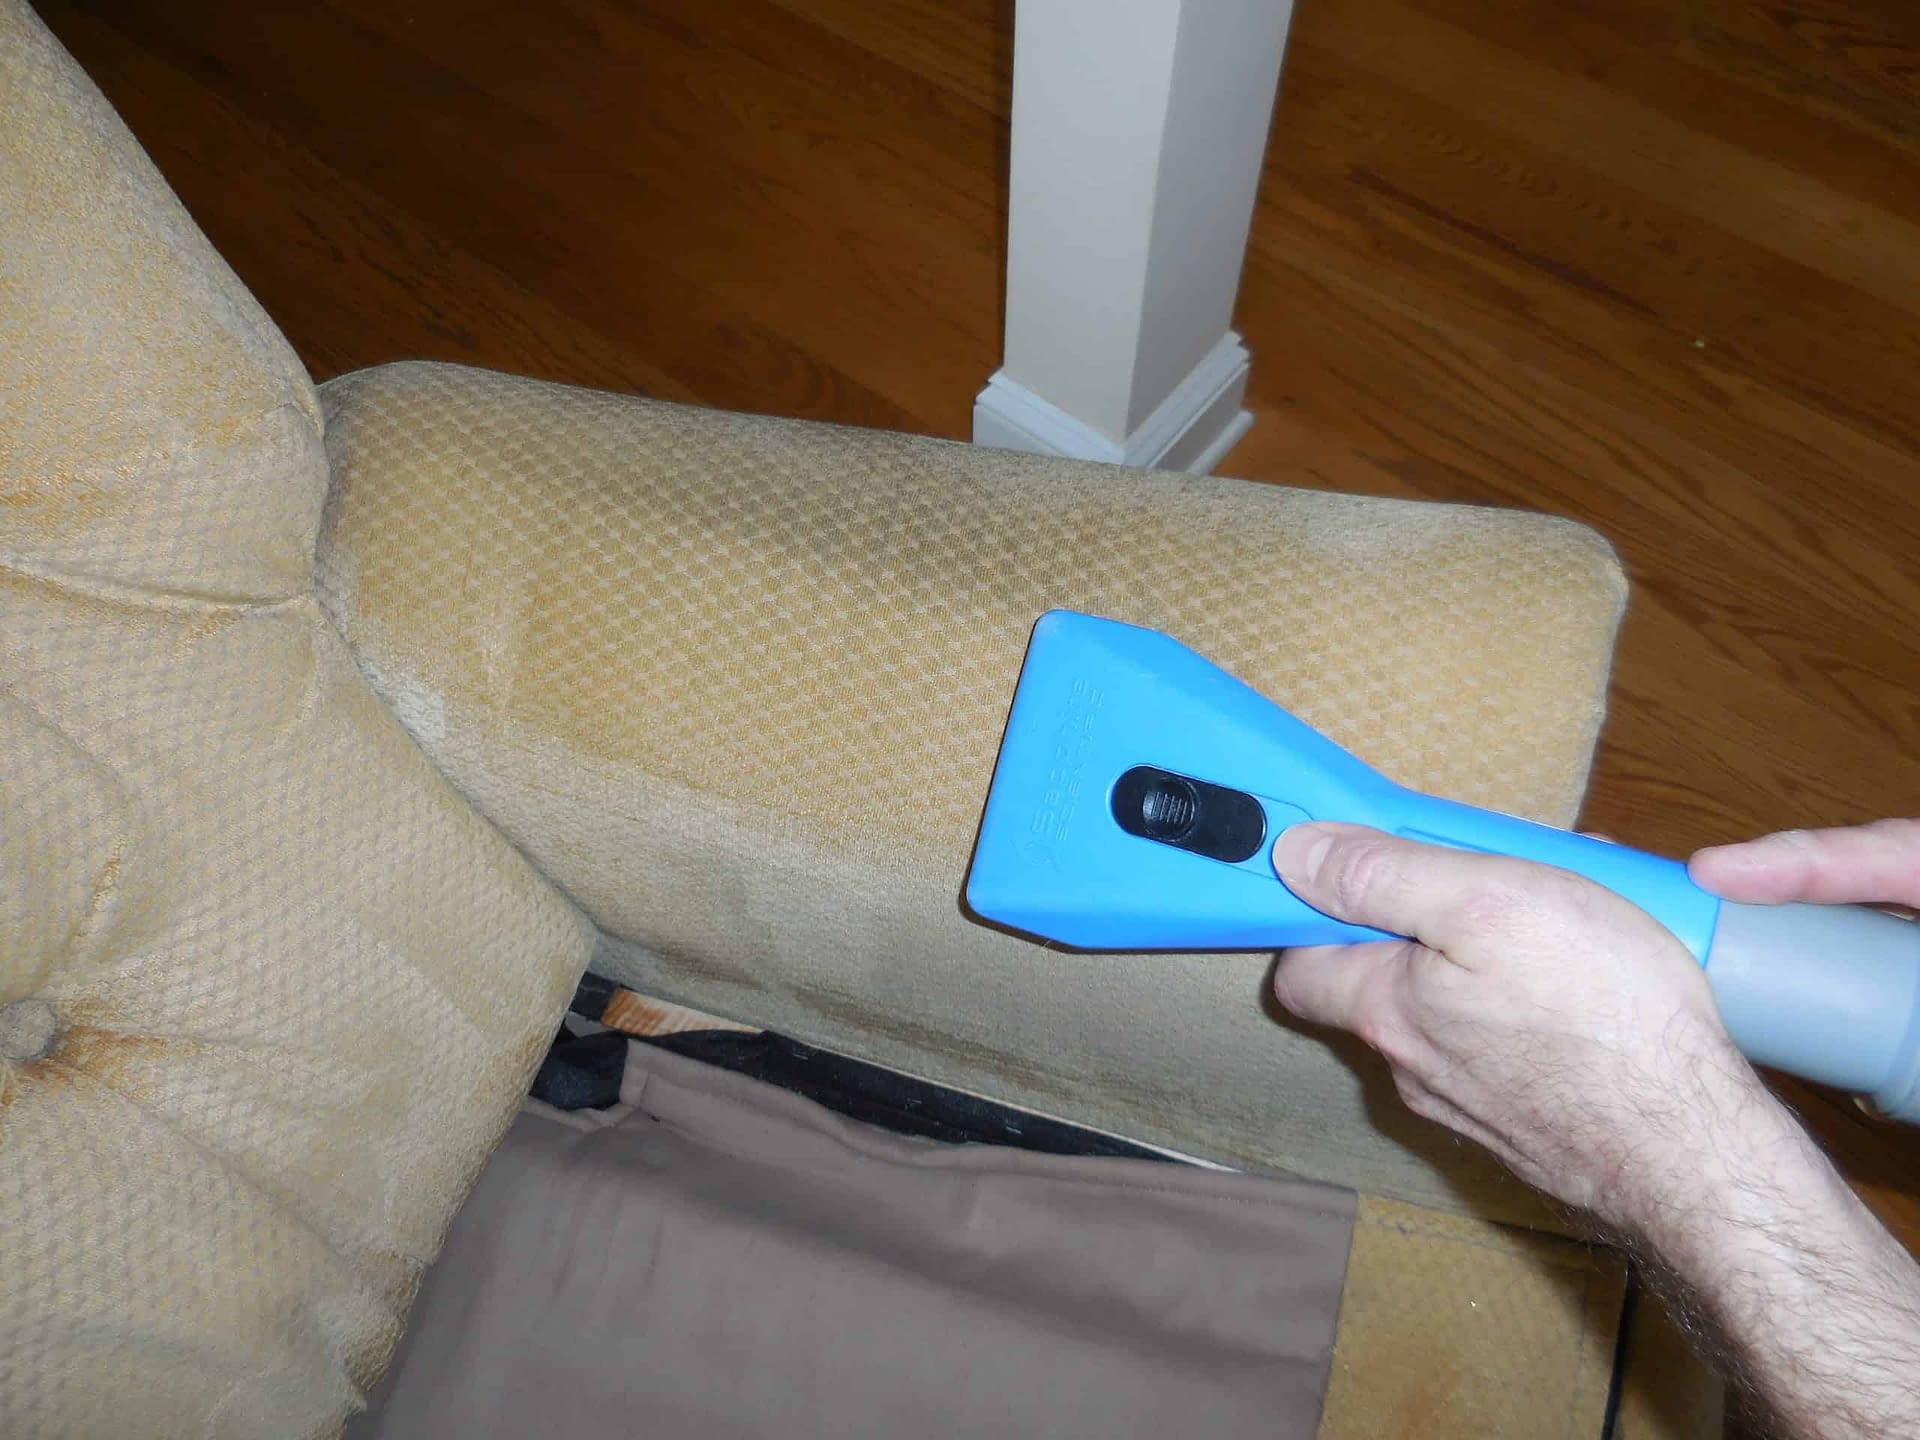 Sofa upholstery arm cleaned in Chalfont, PA